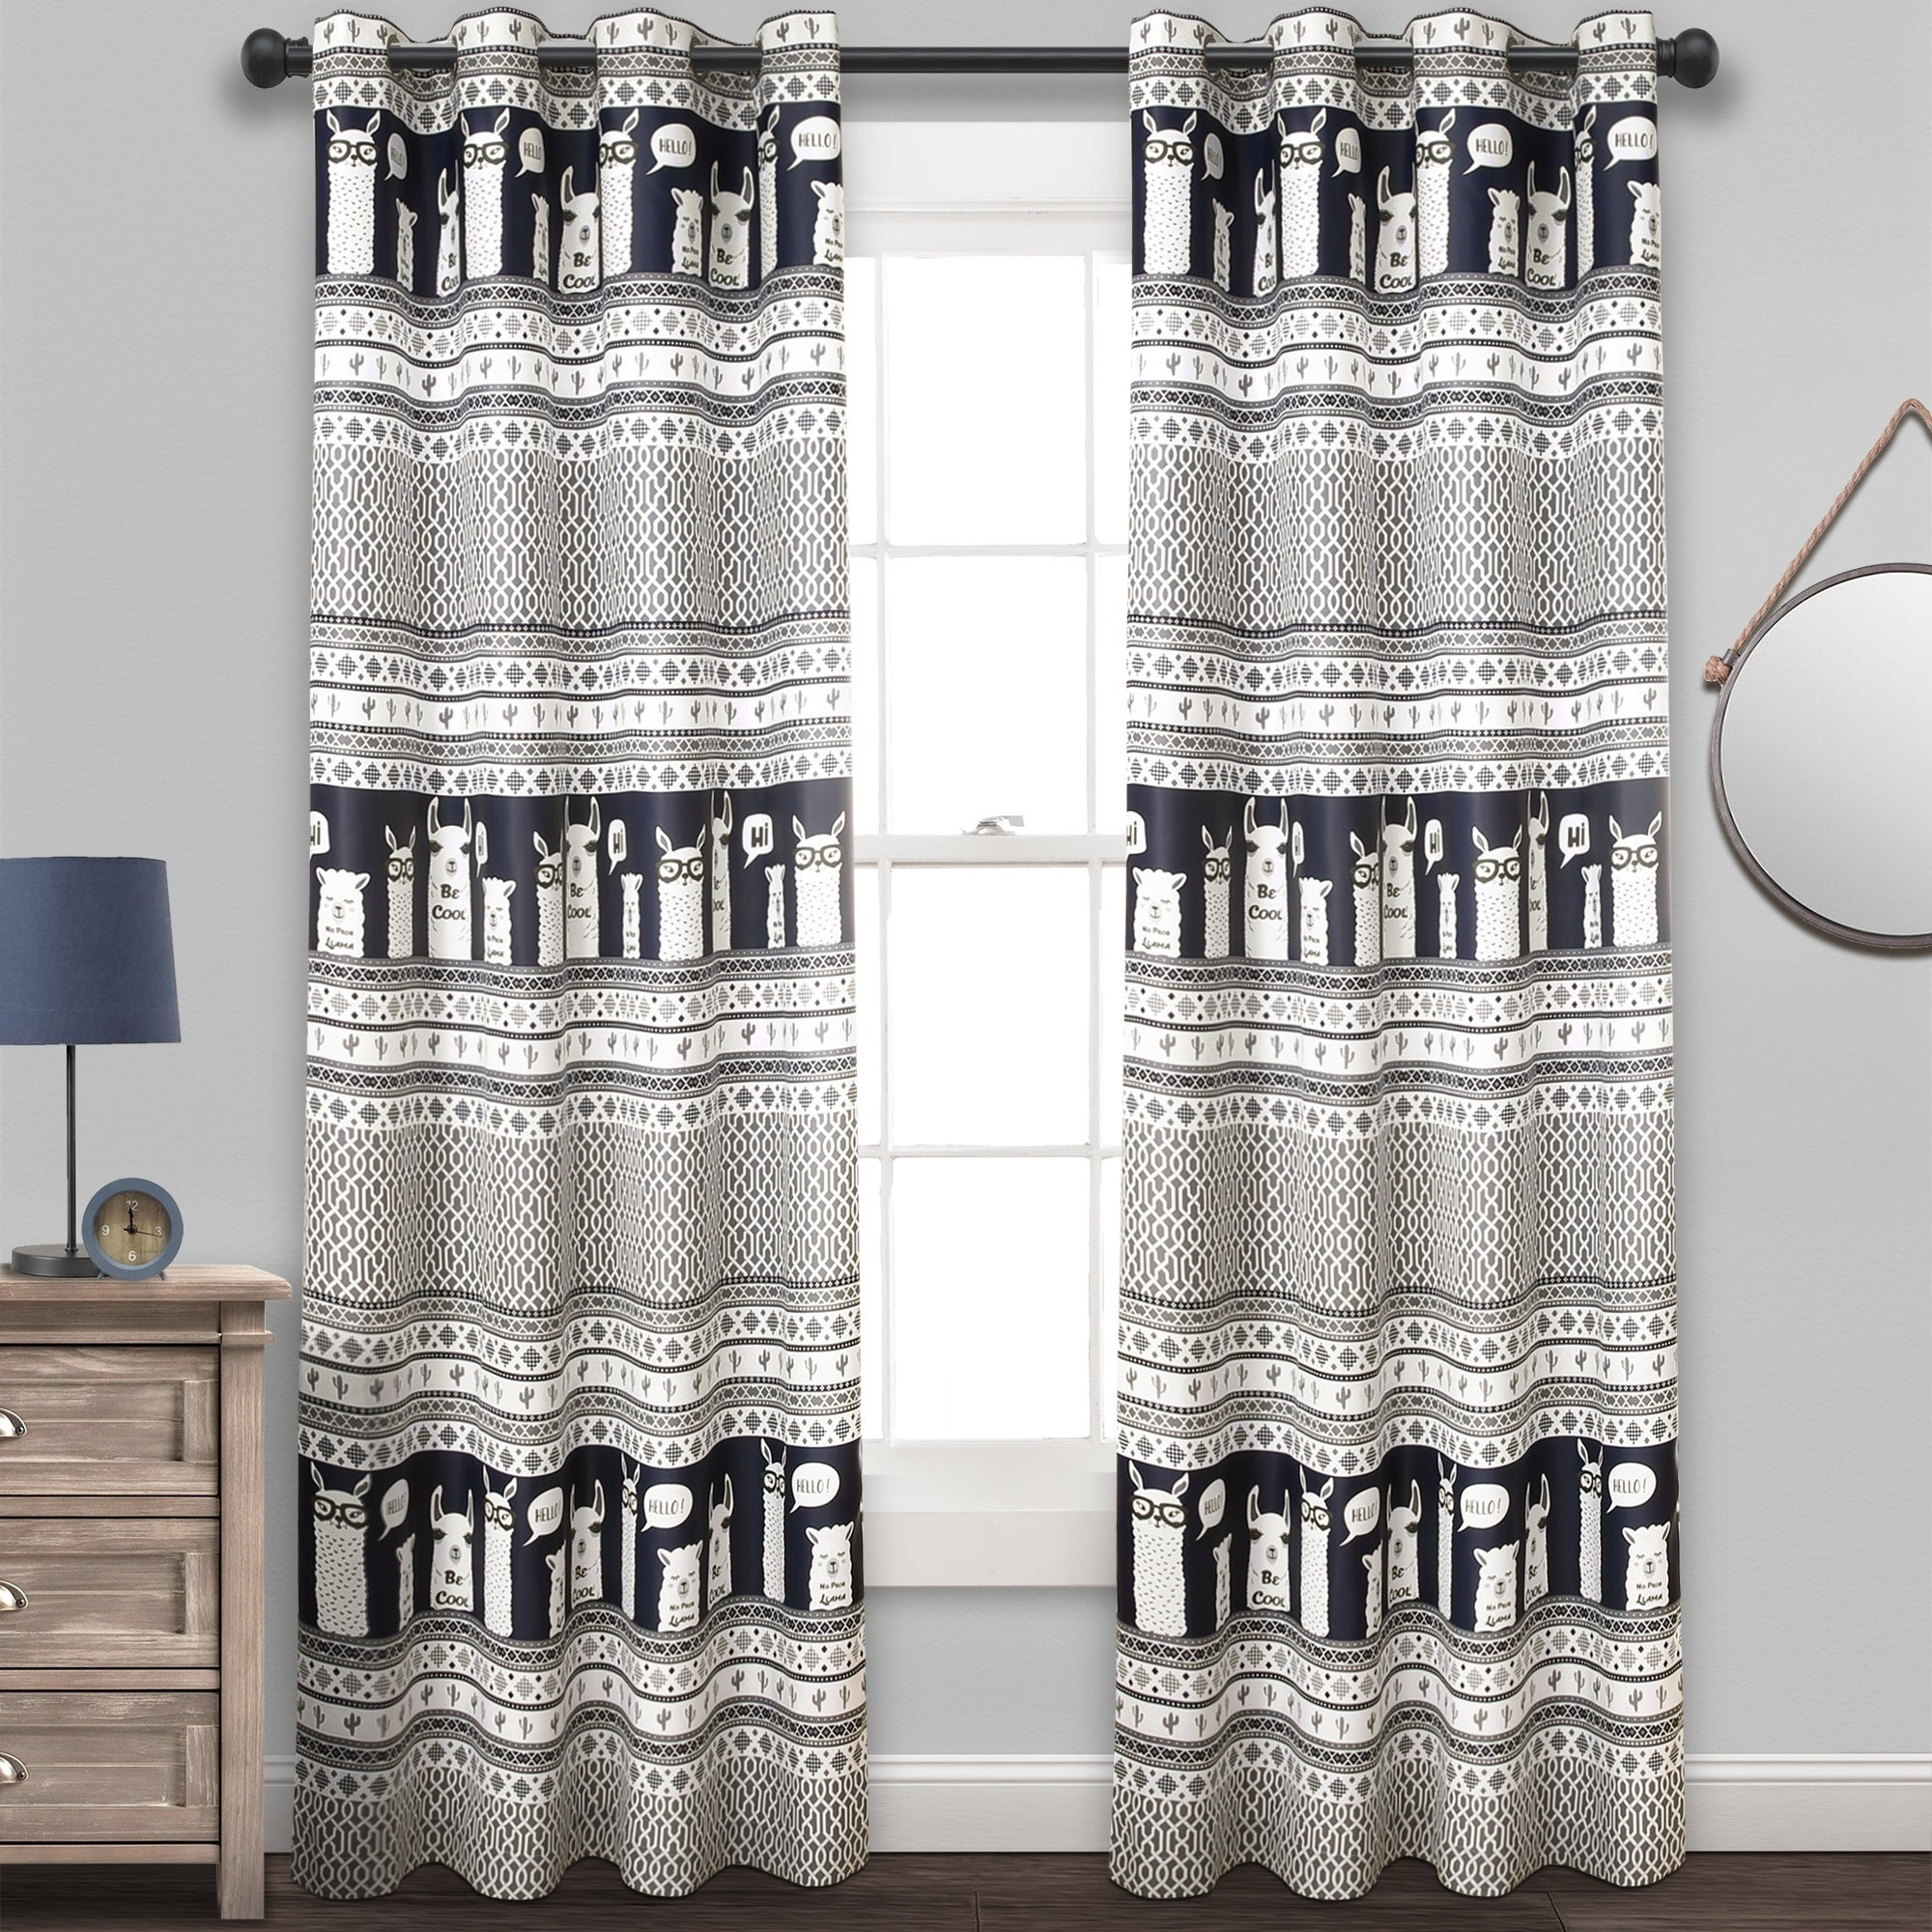 Details About Lush Decor Llama Stripe Room Darkening Window Curtain Panel Throughout Room Darkening Window Curtain Panel Pairs (View 20 of 20)